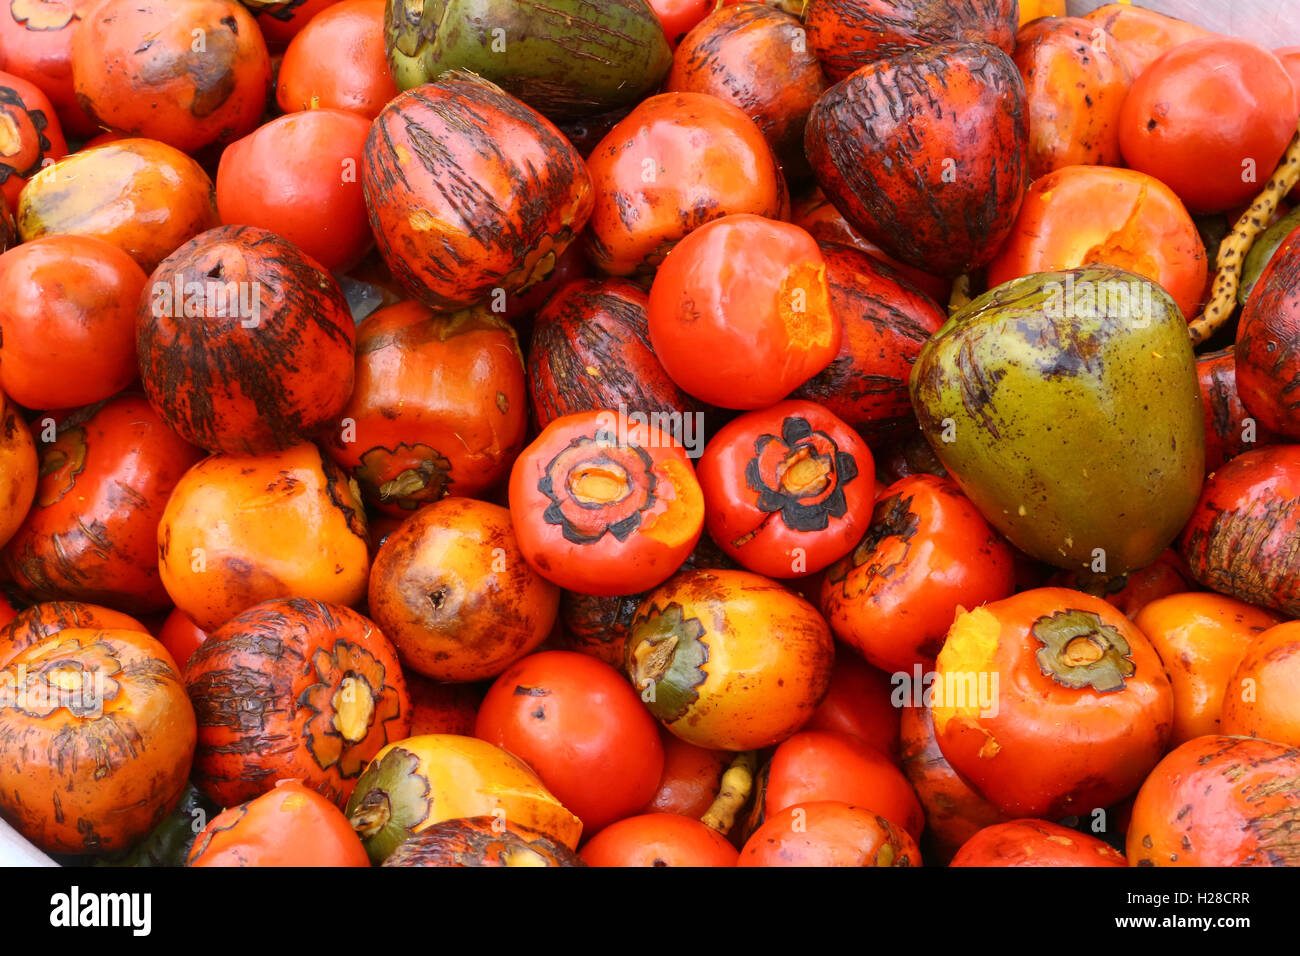 Japanese persimmon are for sale in a local India market - Stock Image